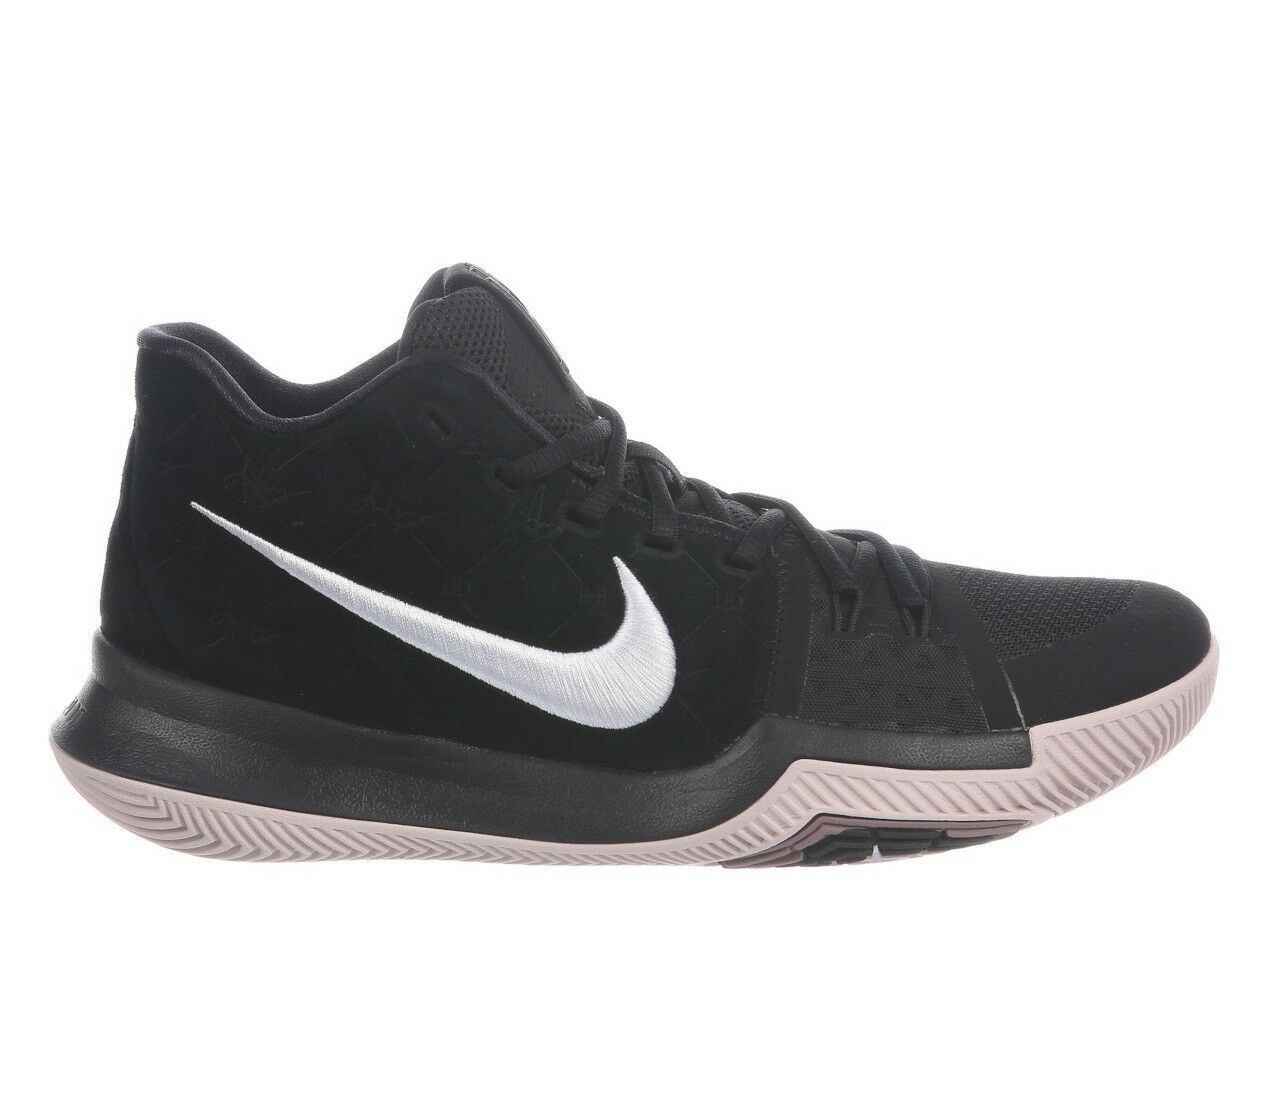 Nike Kyrie 3 Silt Red Mens 852395-010 Black Suede Basketball Shoes Comfortable Comfortable and good-looking